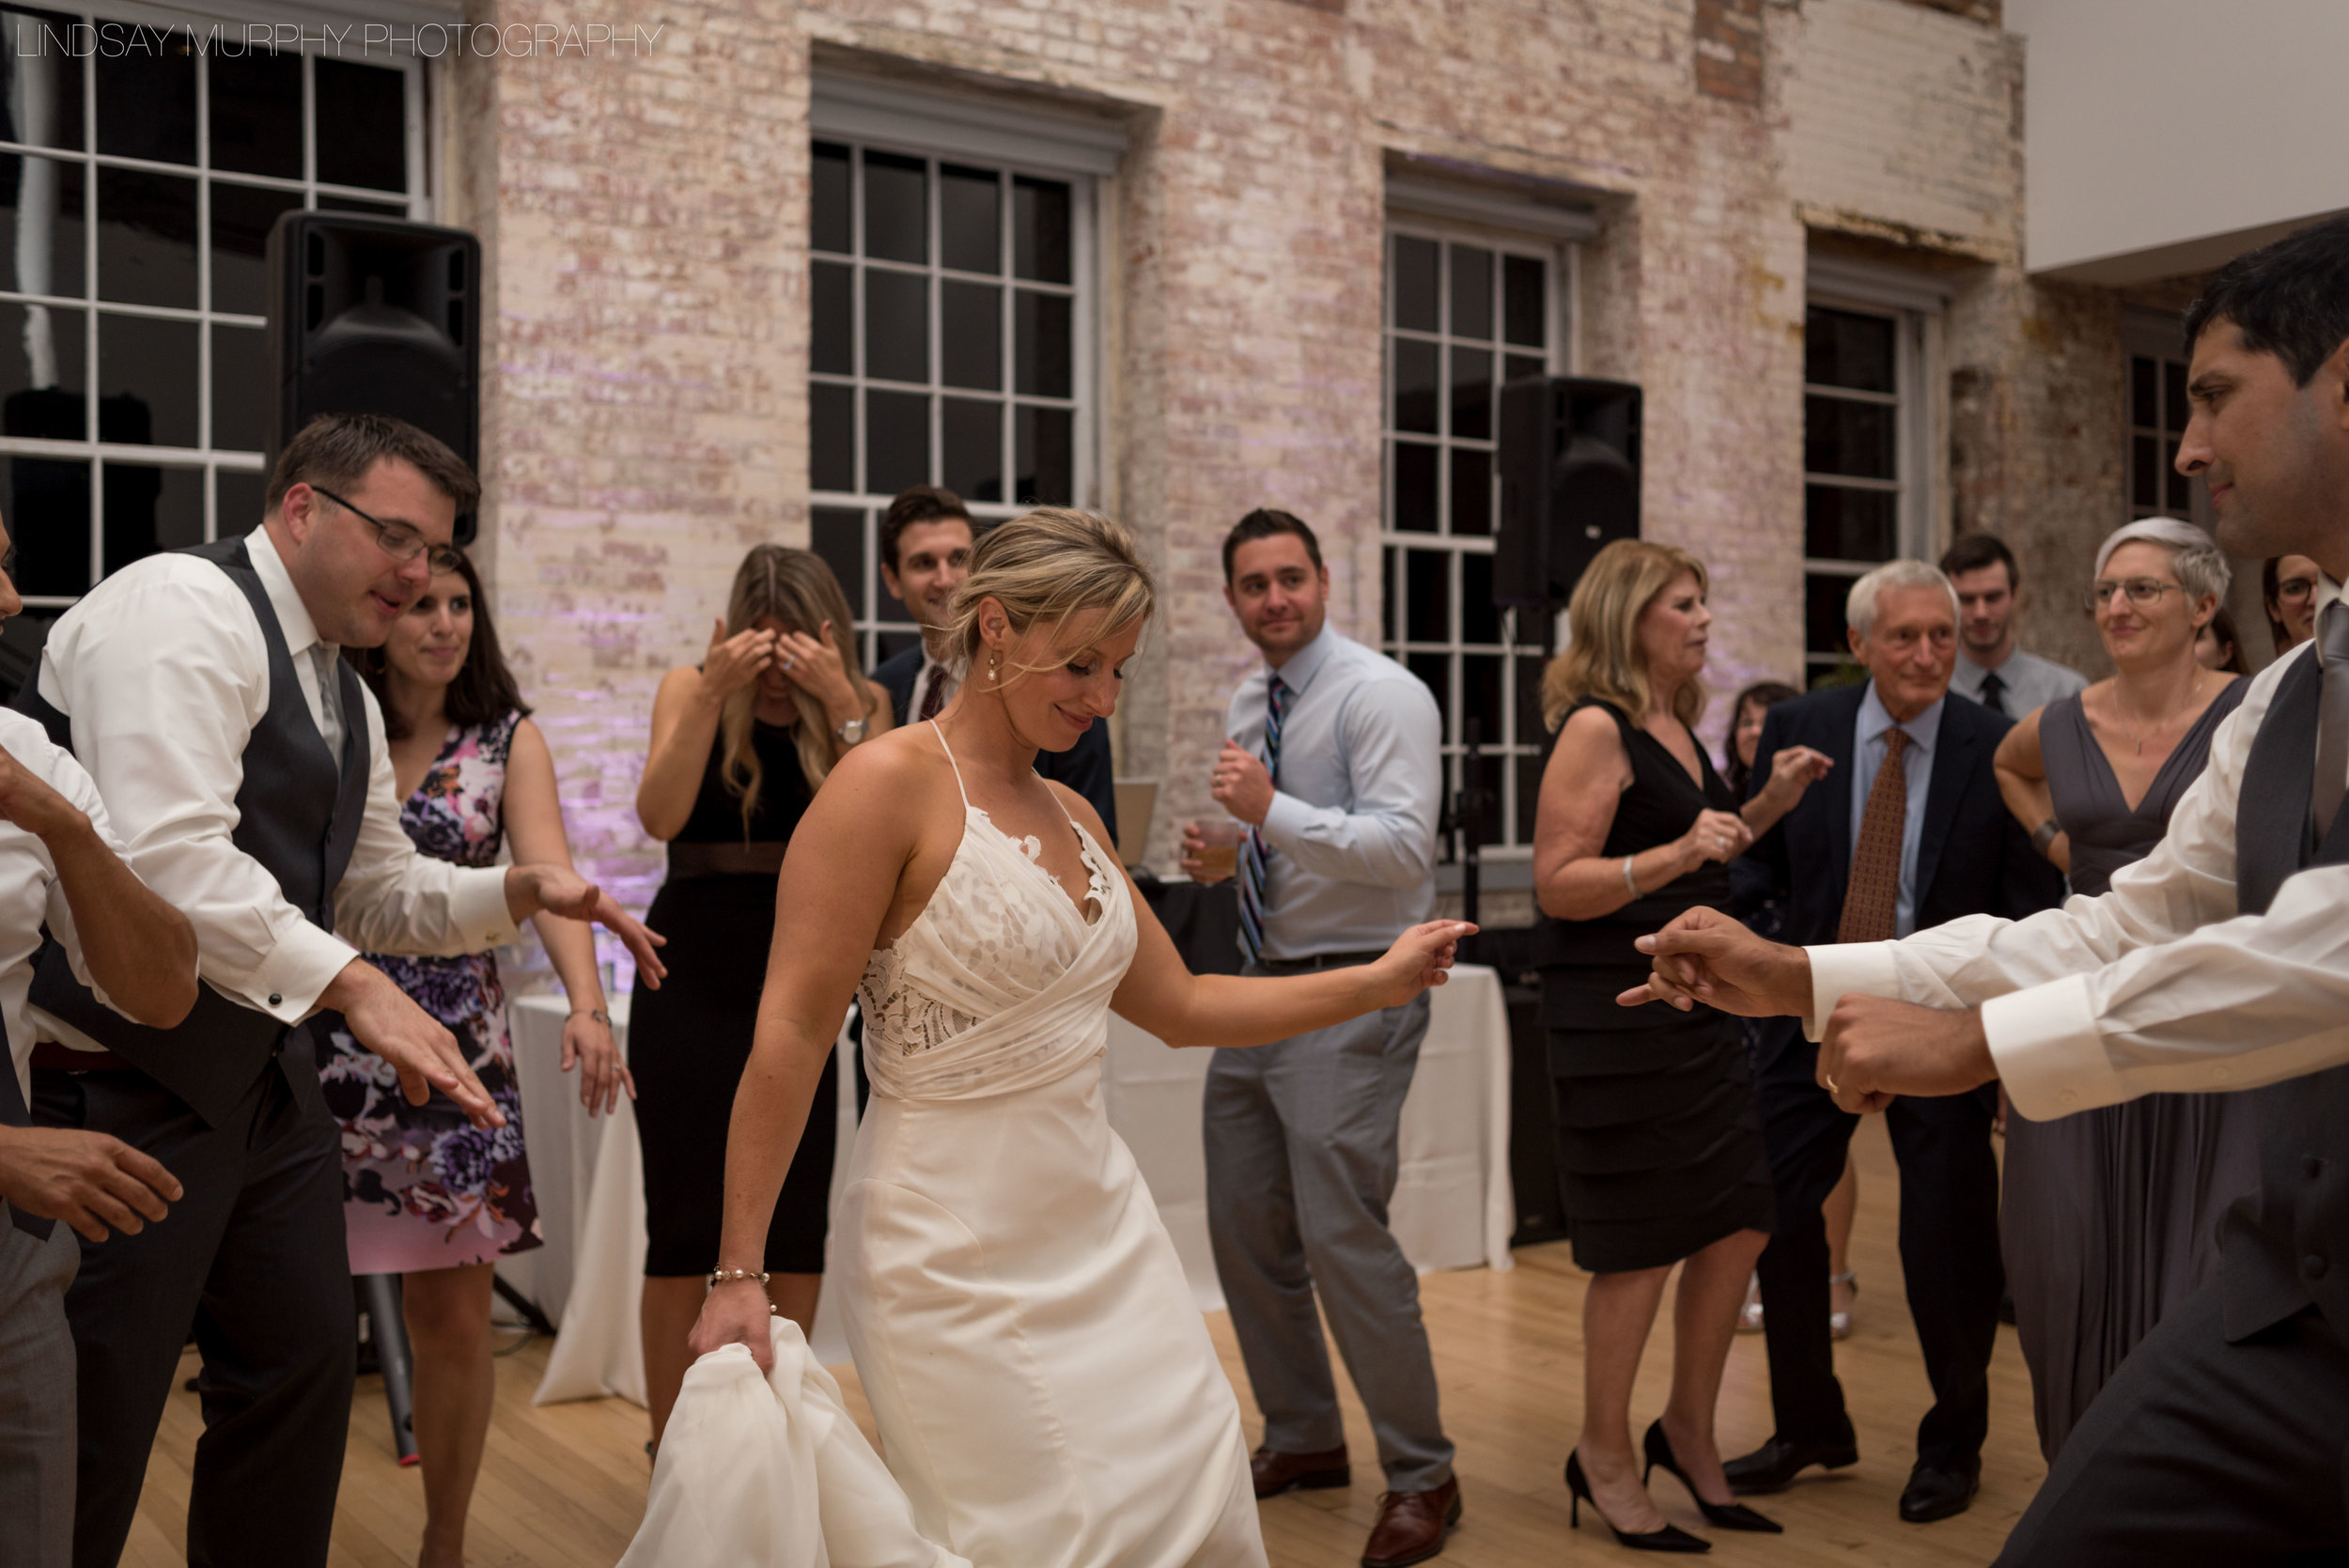 New_England_wedding-104.jpg